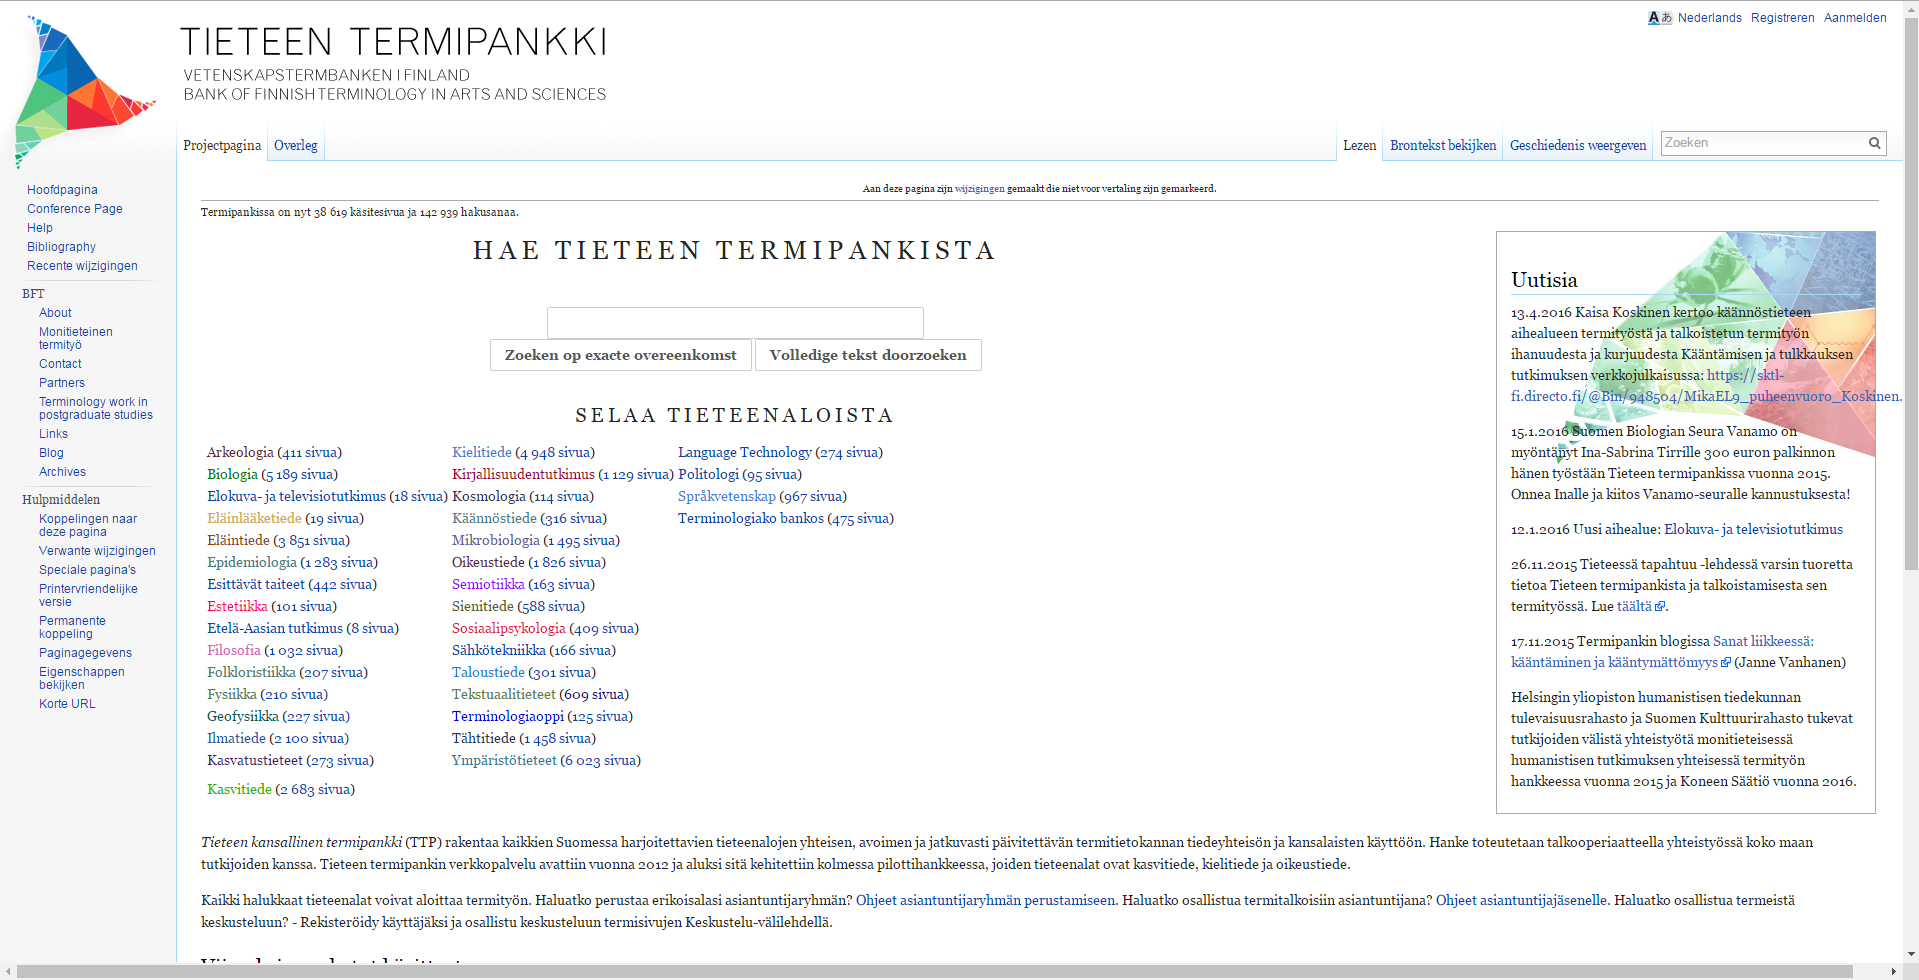 The Bank of Finnish Terminology.